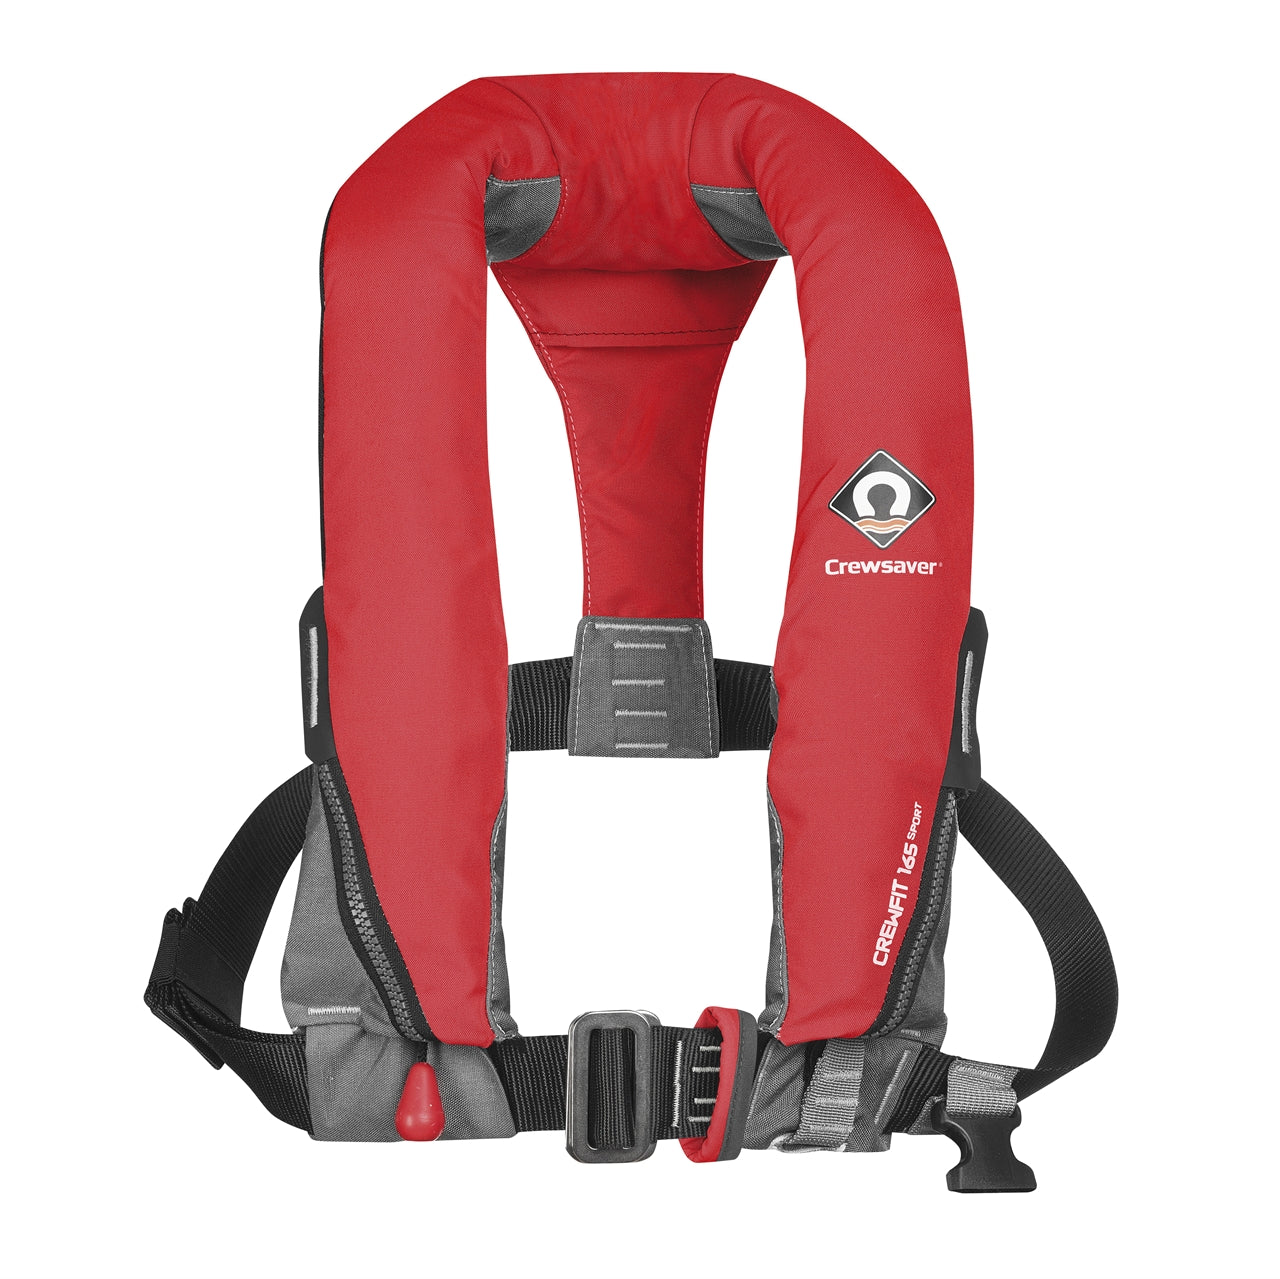 Crewsaver Crewfit 165 Sport with Harness Manual